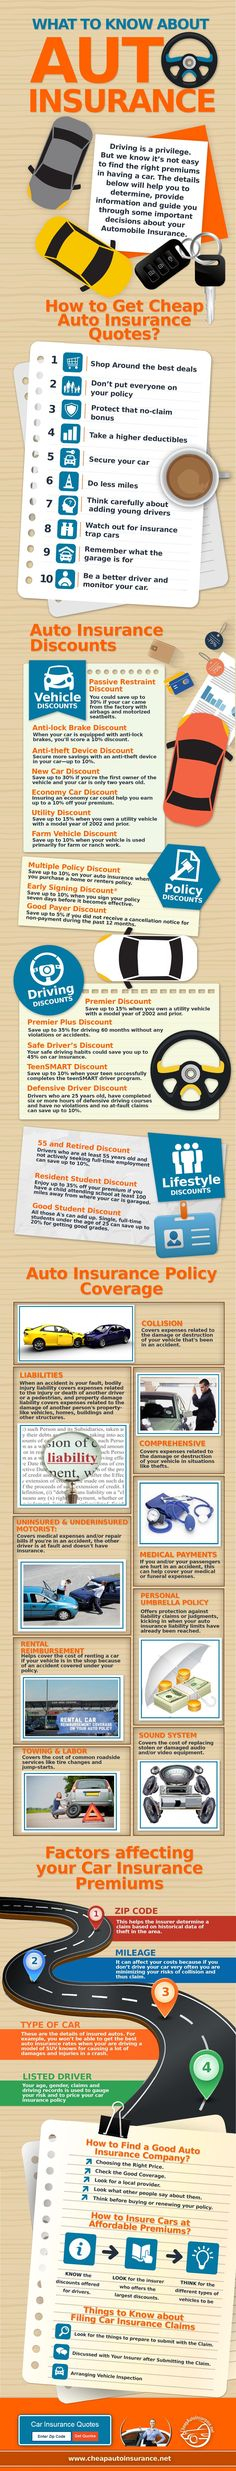 What to Know about Automobile Insurance #infographic #Insurance #Transportation Cars